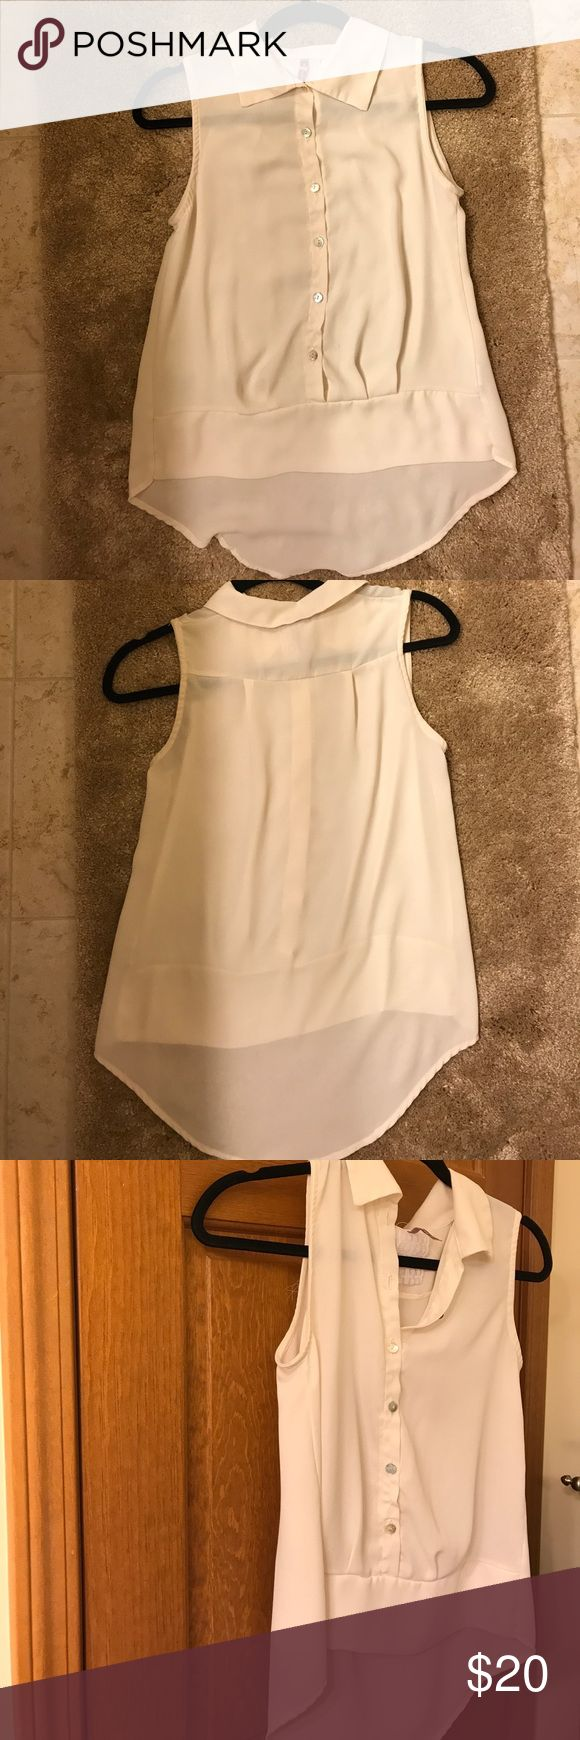 Semi-Sheer Cream Women's Sleeveless High-Low Top Perfect summer top to dress up or down. Listed size small. Semi-sheer top that would be perfect to wear with a camisole, bandeau, or bralette under. Dress it up or down with shorts, jeans, or a skirt. Delicate shell like buttons. Cream/off-white color. Rarely worn. Priced at $20, please let me know if you have questions or would like to inquire about more pictures! ❤️❤️ Mauve Tops Blouses